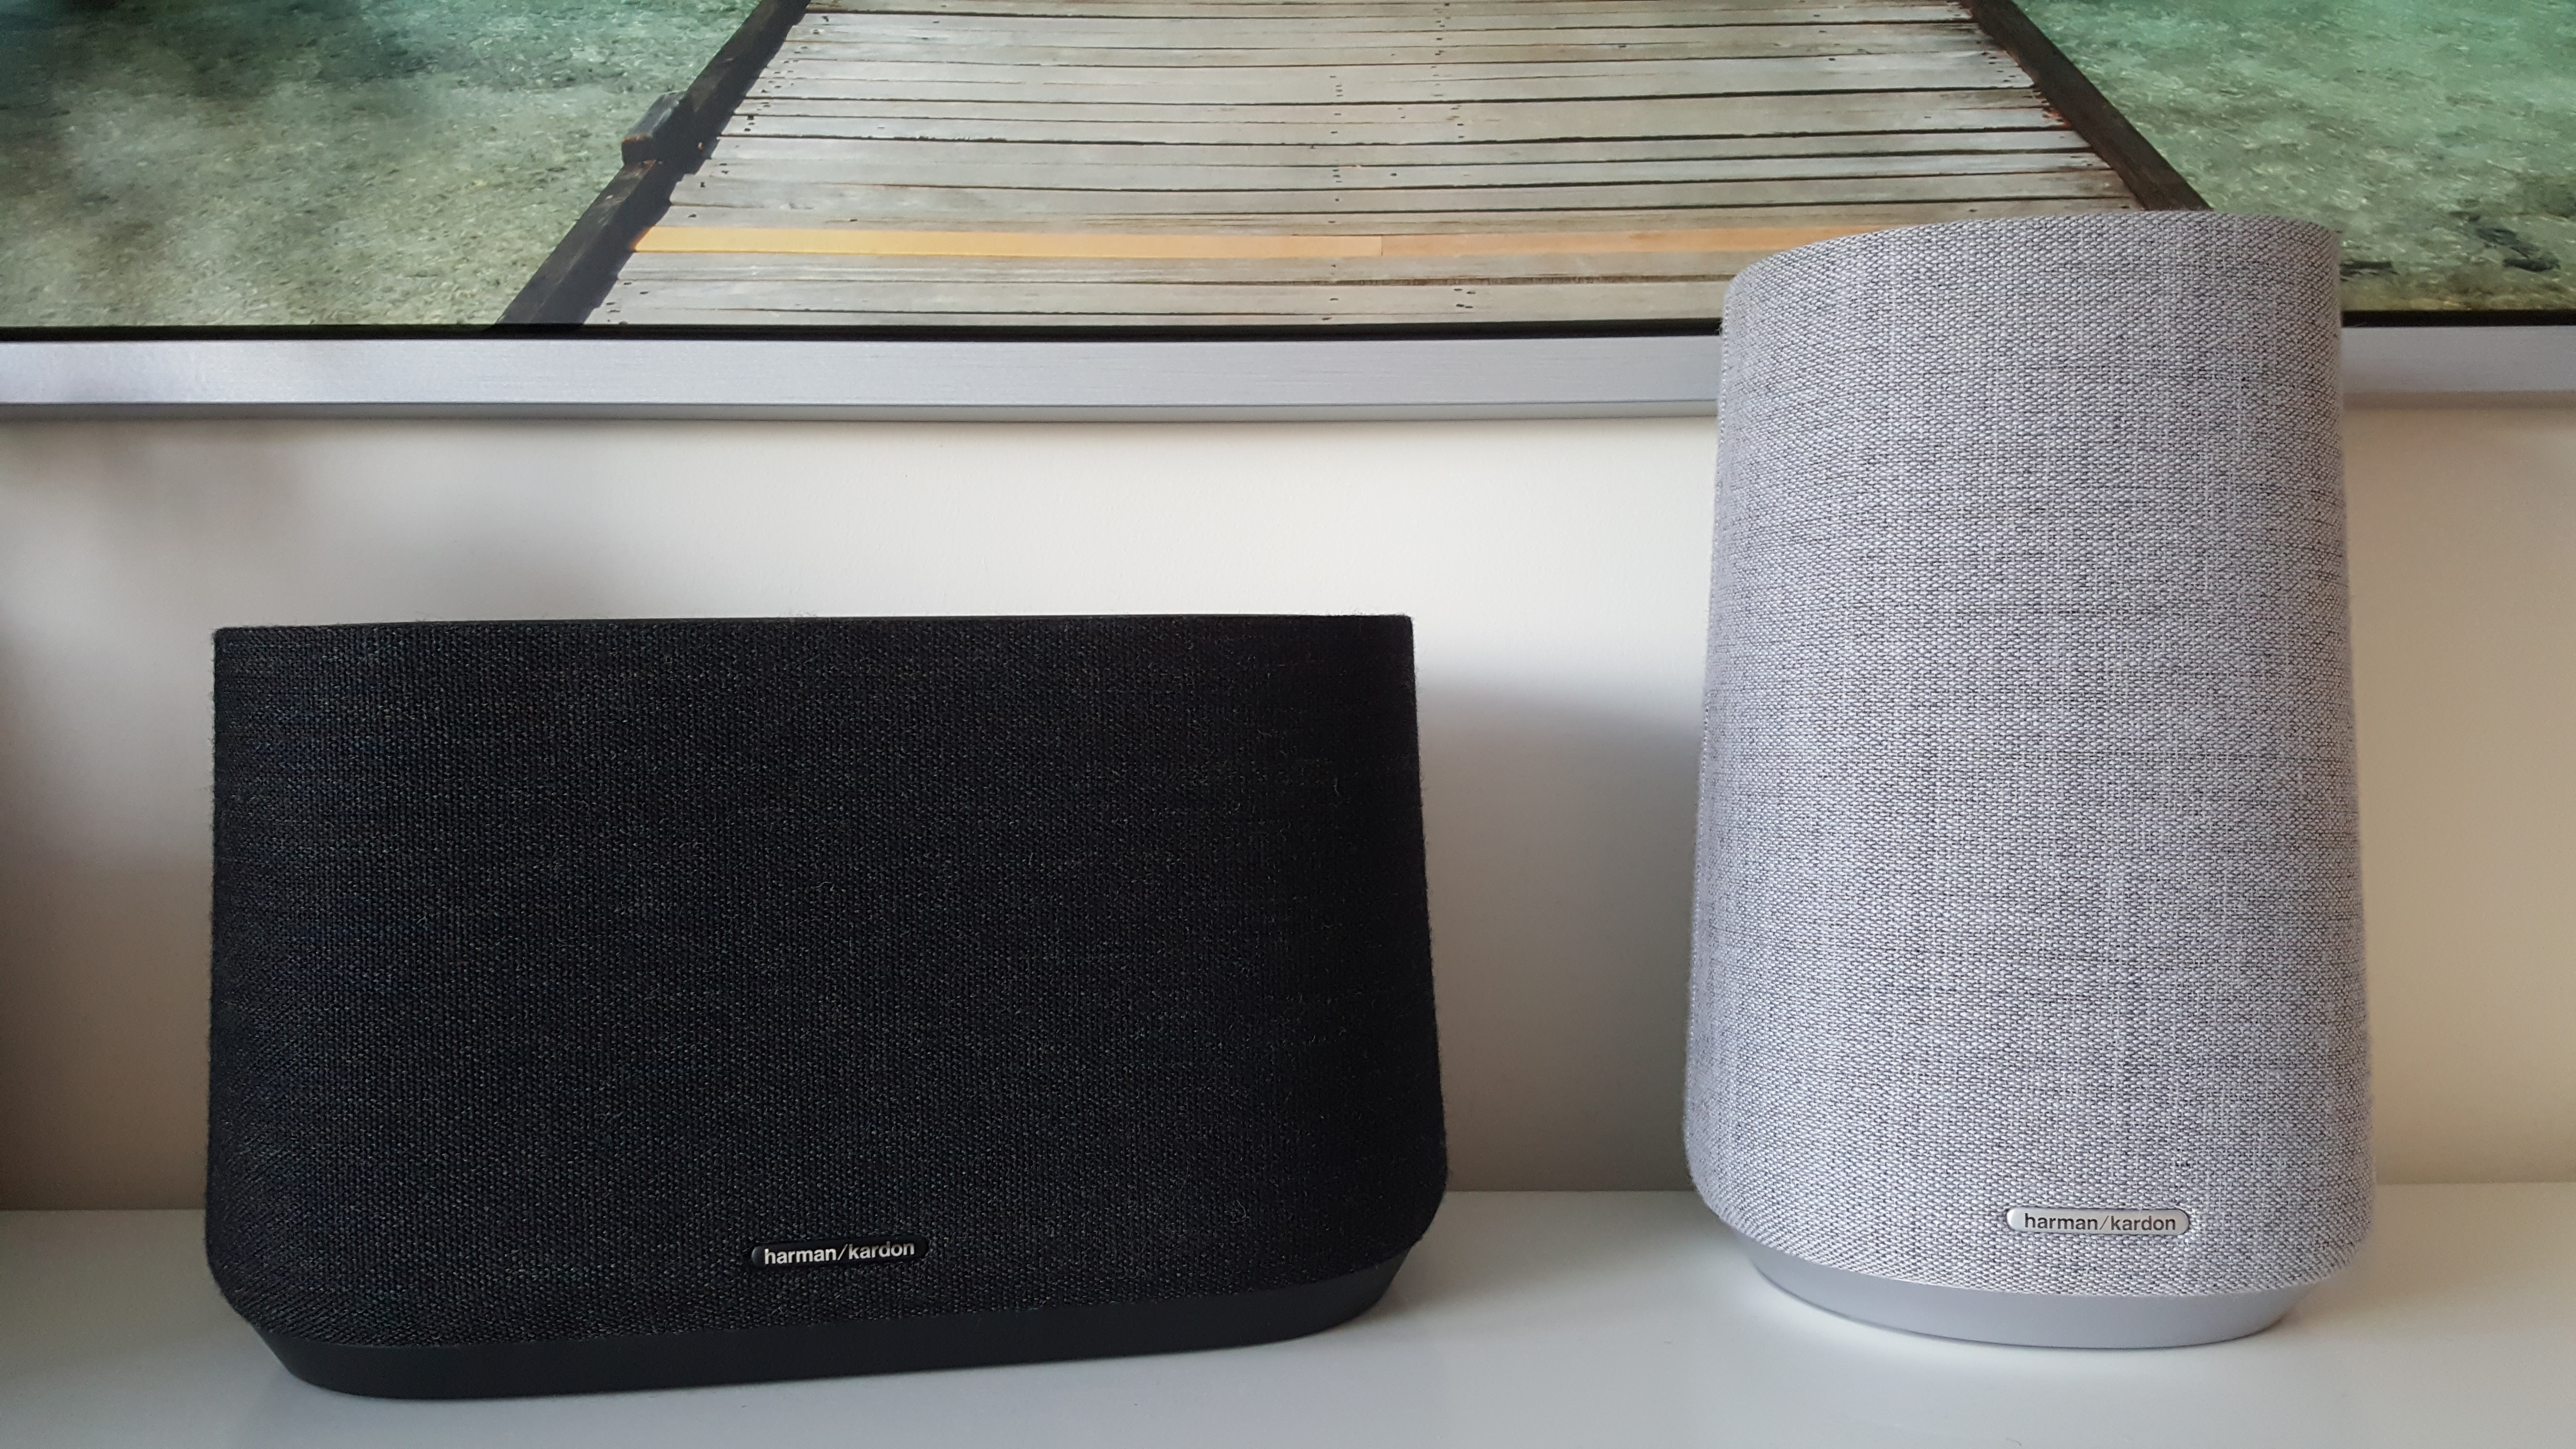 Harman Kardon Citation 100 & Citation 300 - głośniki z asystentem